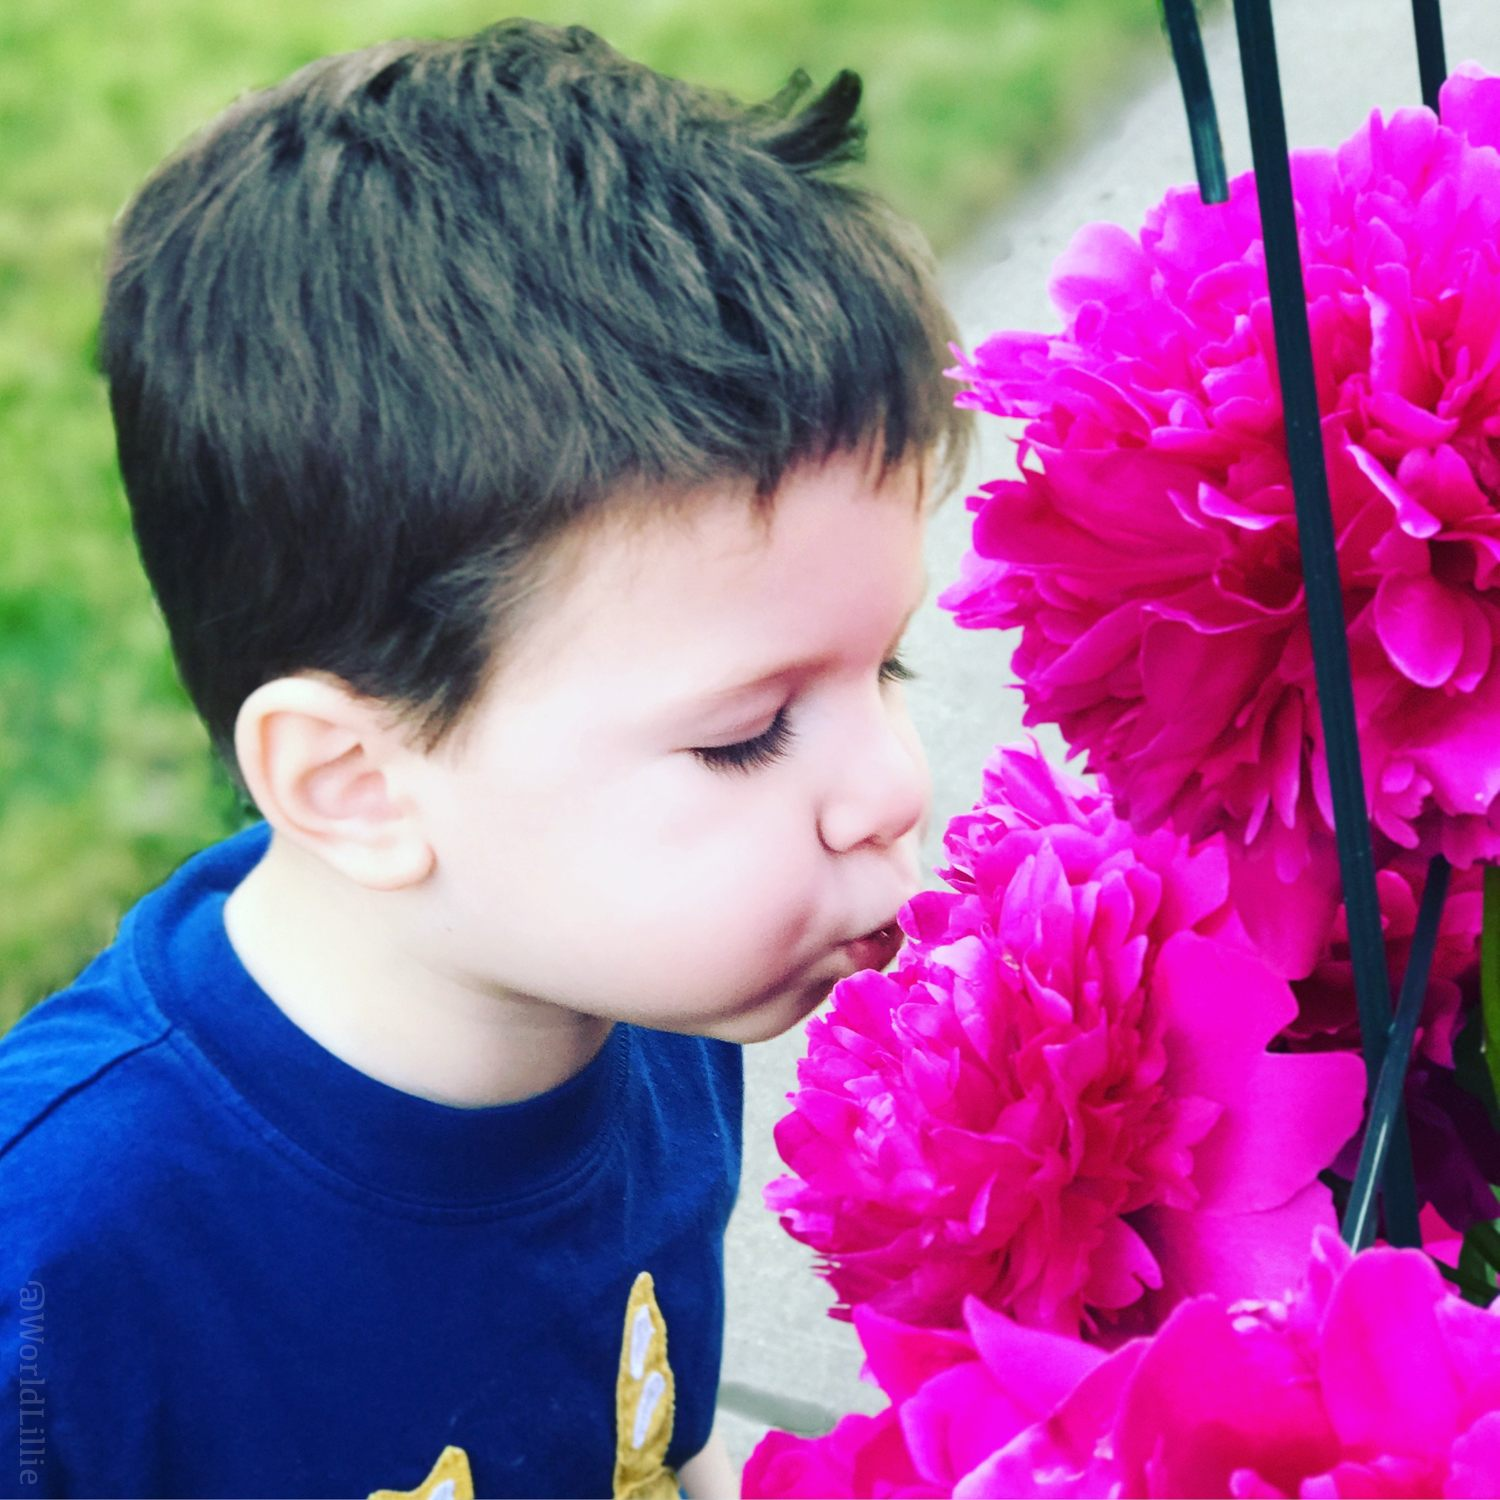 Kissing the flowers.